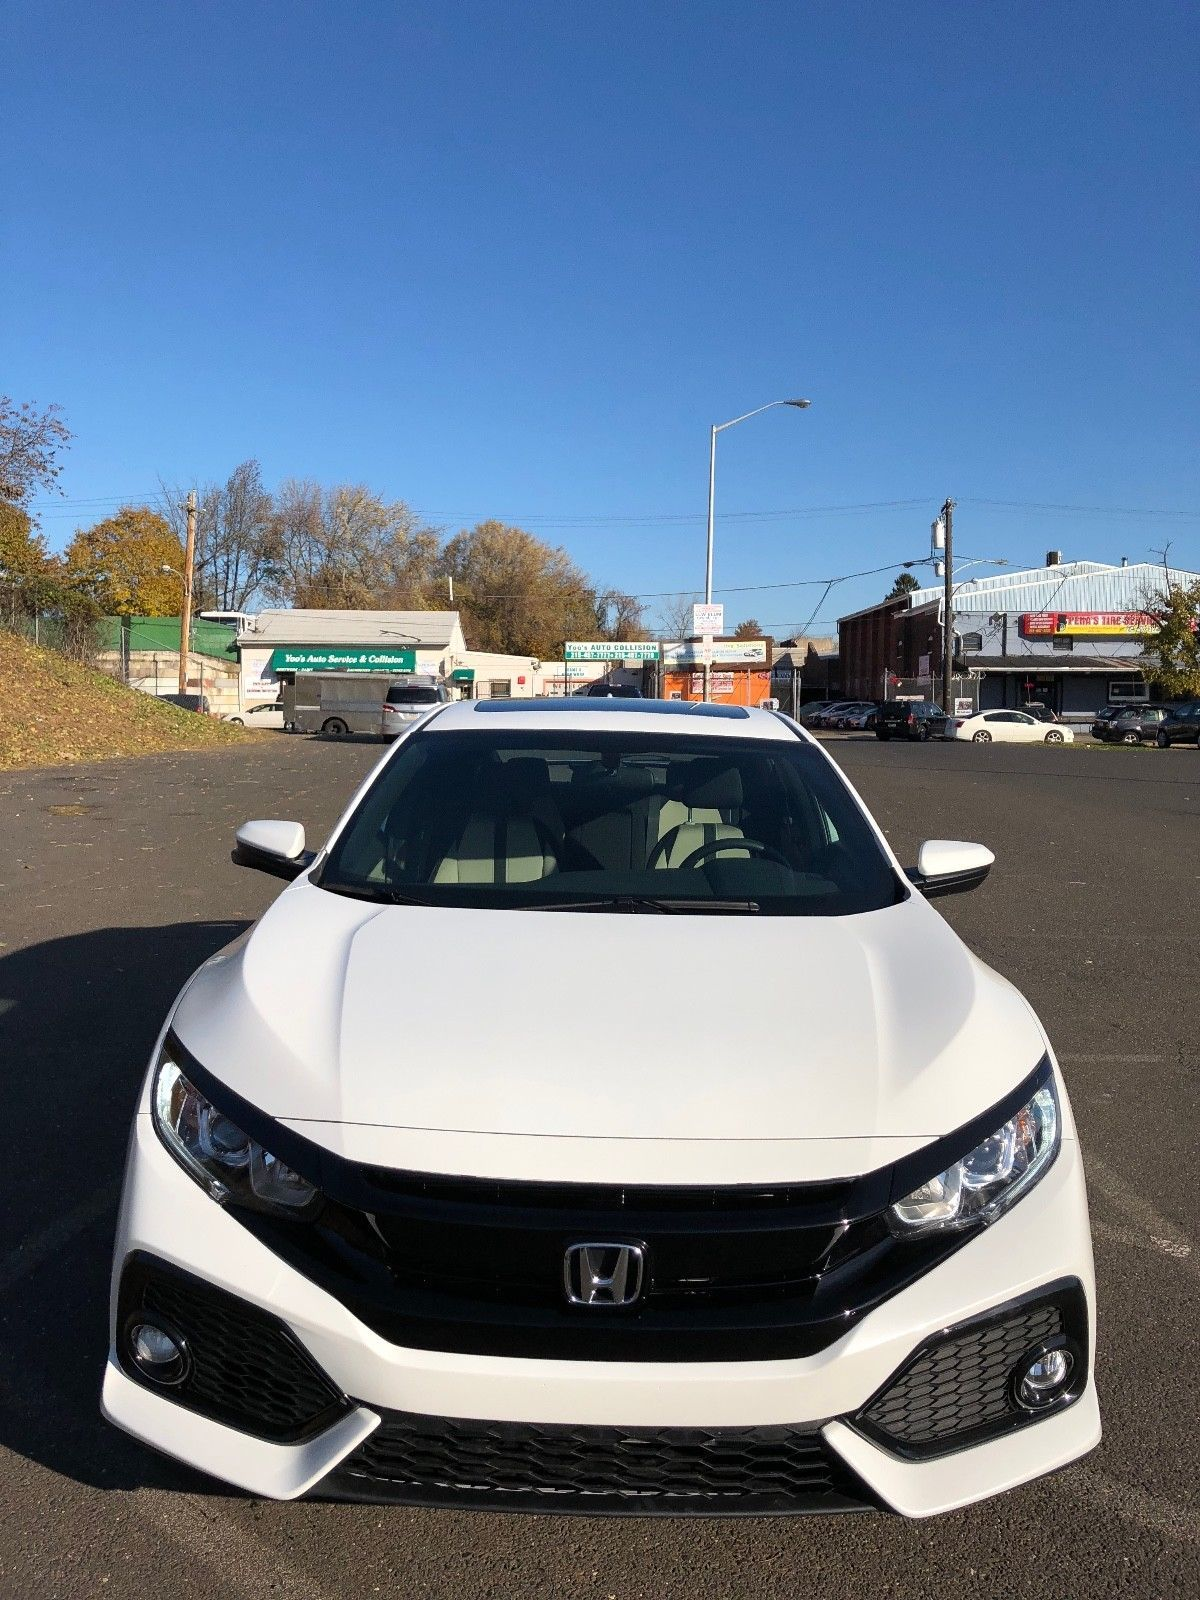 4 Door Civic Hatchback : civic, hatchback, Amazing, Honda, Civic, Hatchback, 4-Door, Check, Http://24…, Civic,